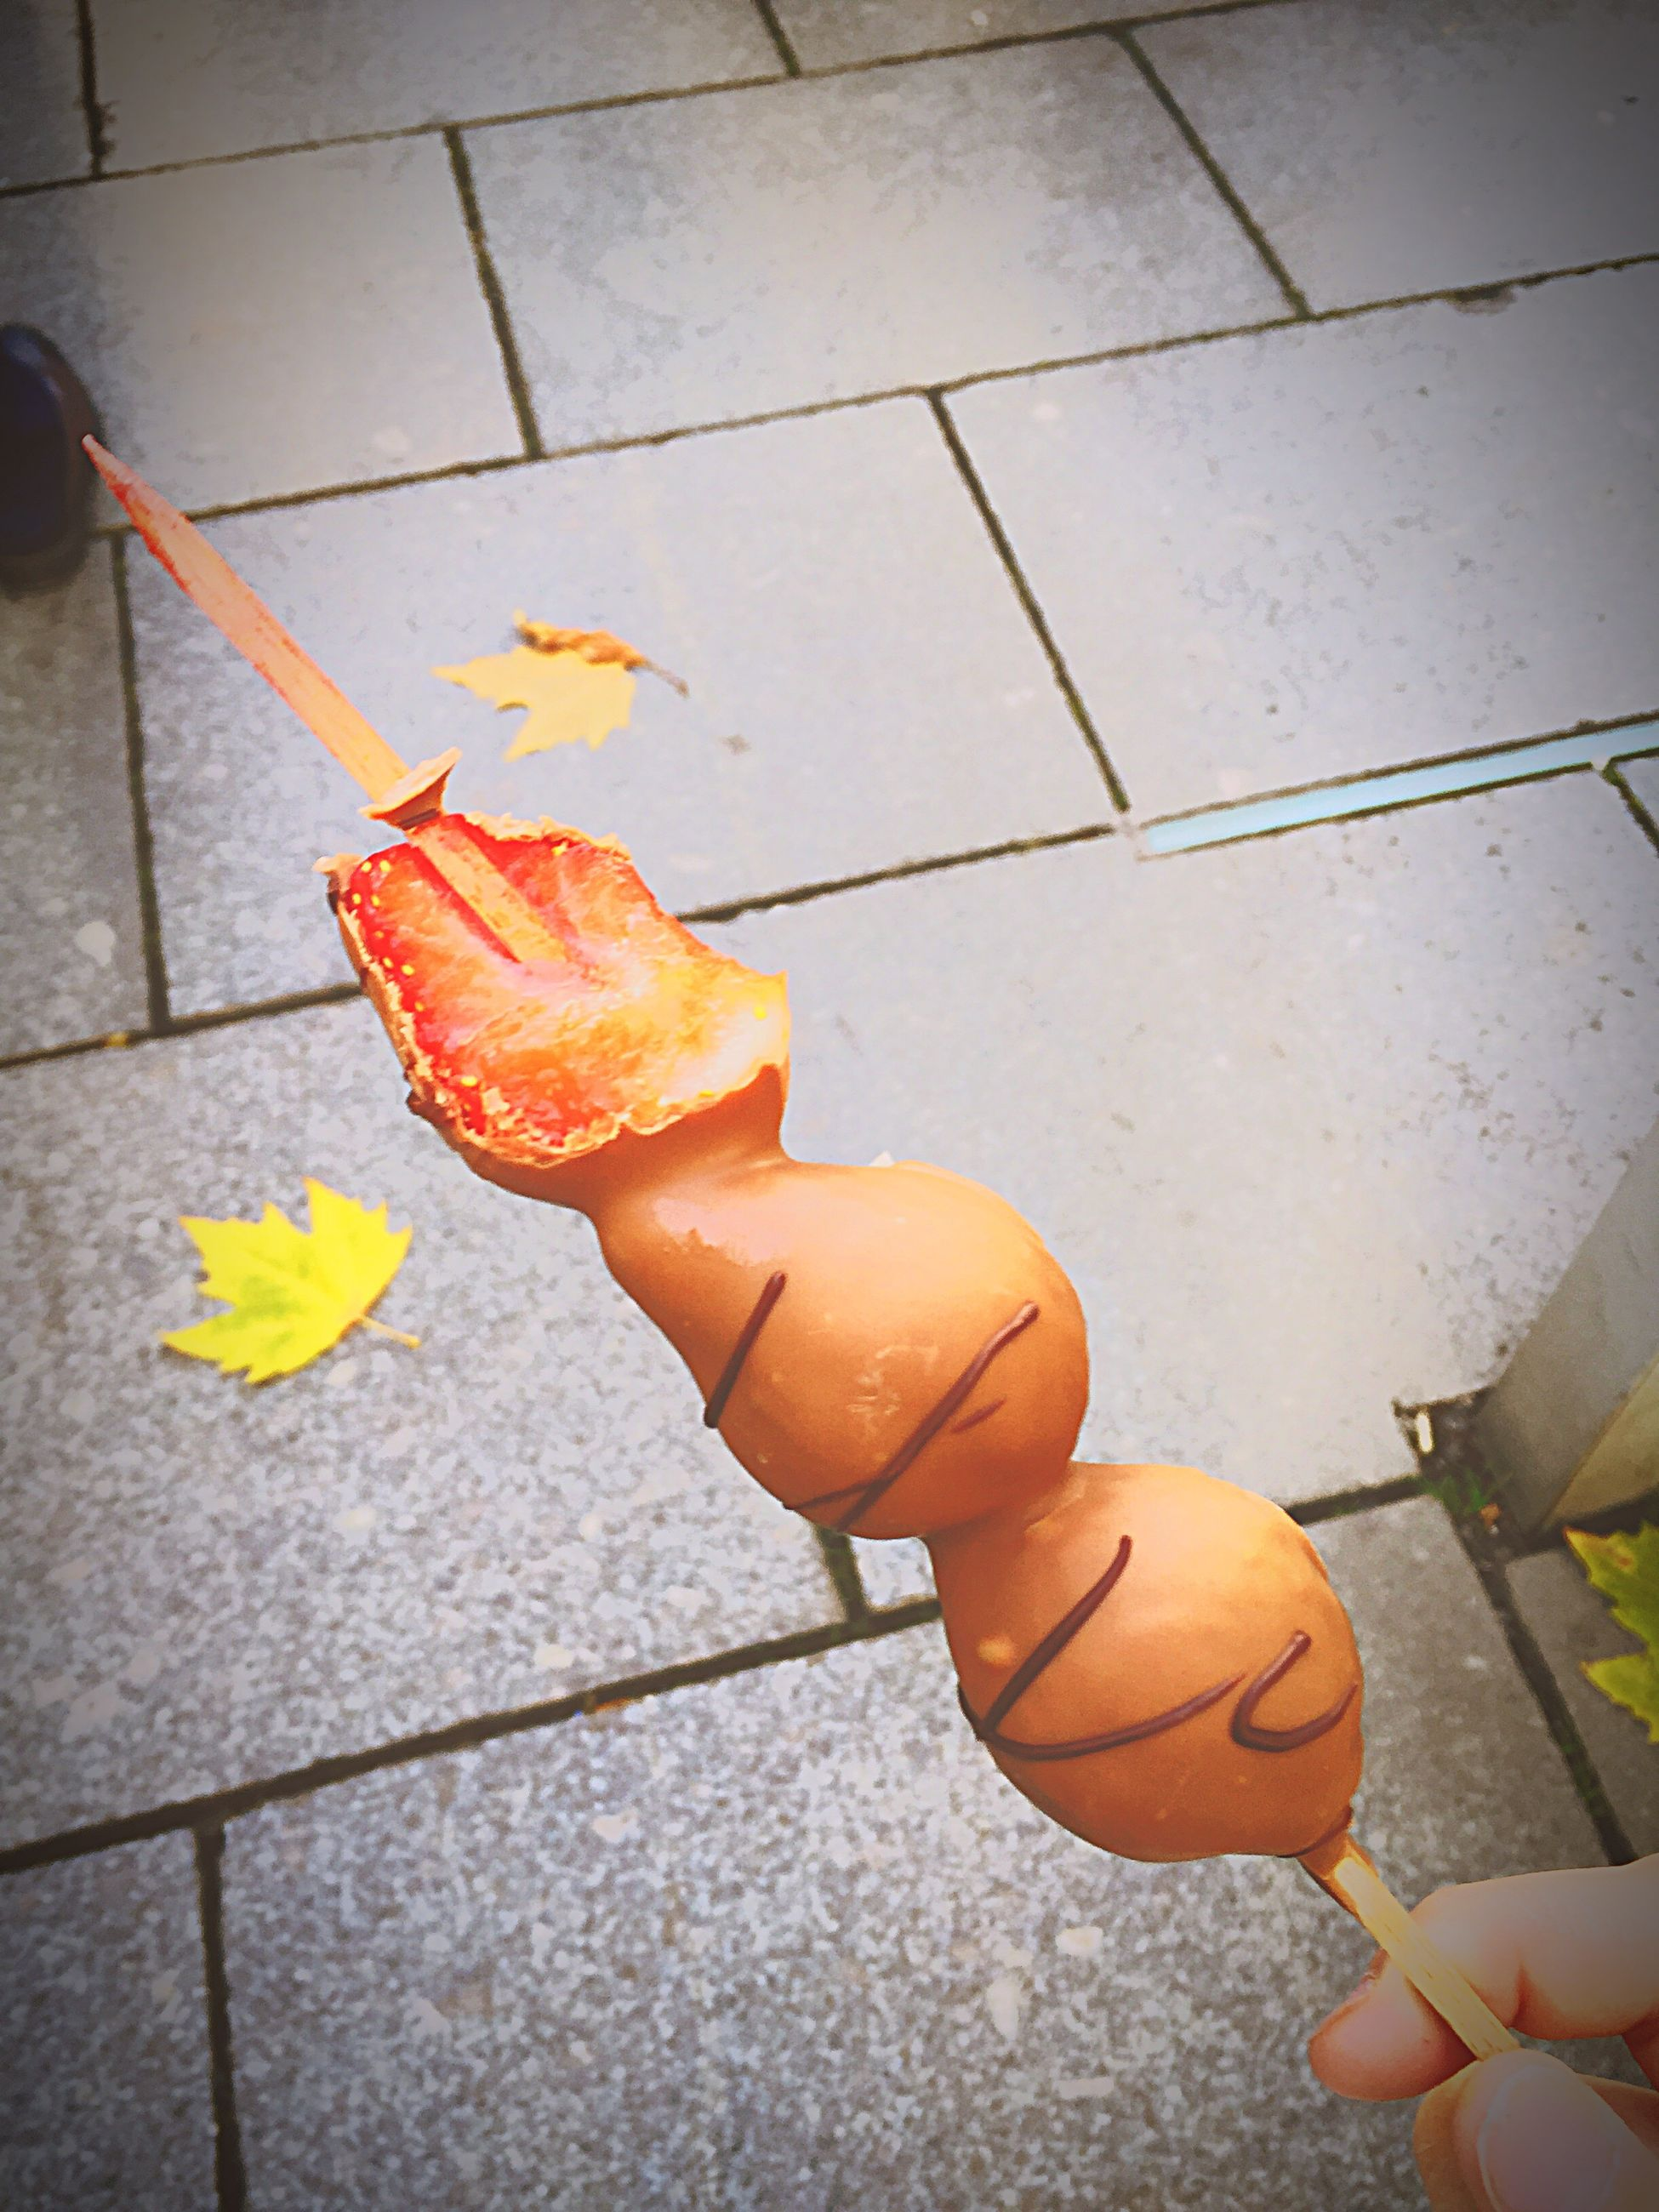 person, autumn, high angle view, food, food and drink, orange color, holding, leaf, freshness, yellow, part of, personal perspective, unrecognizable person, dry, change, low section, street